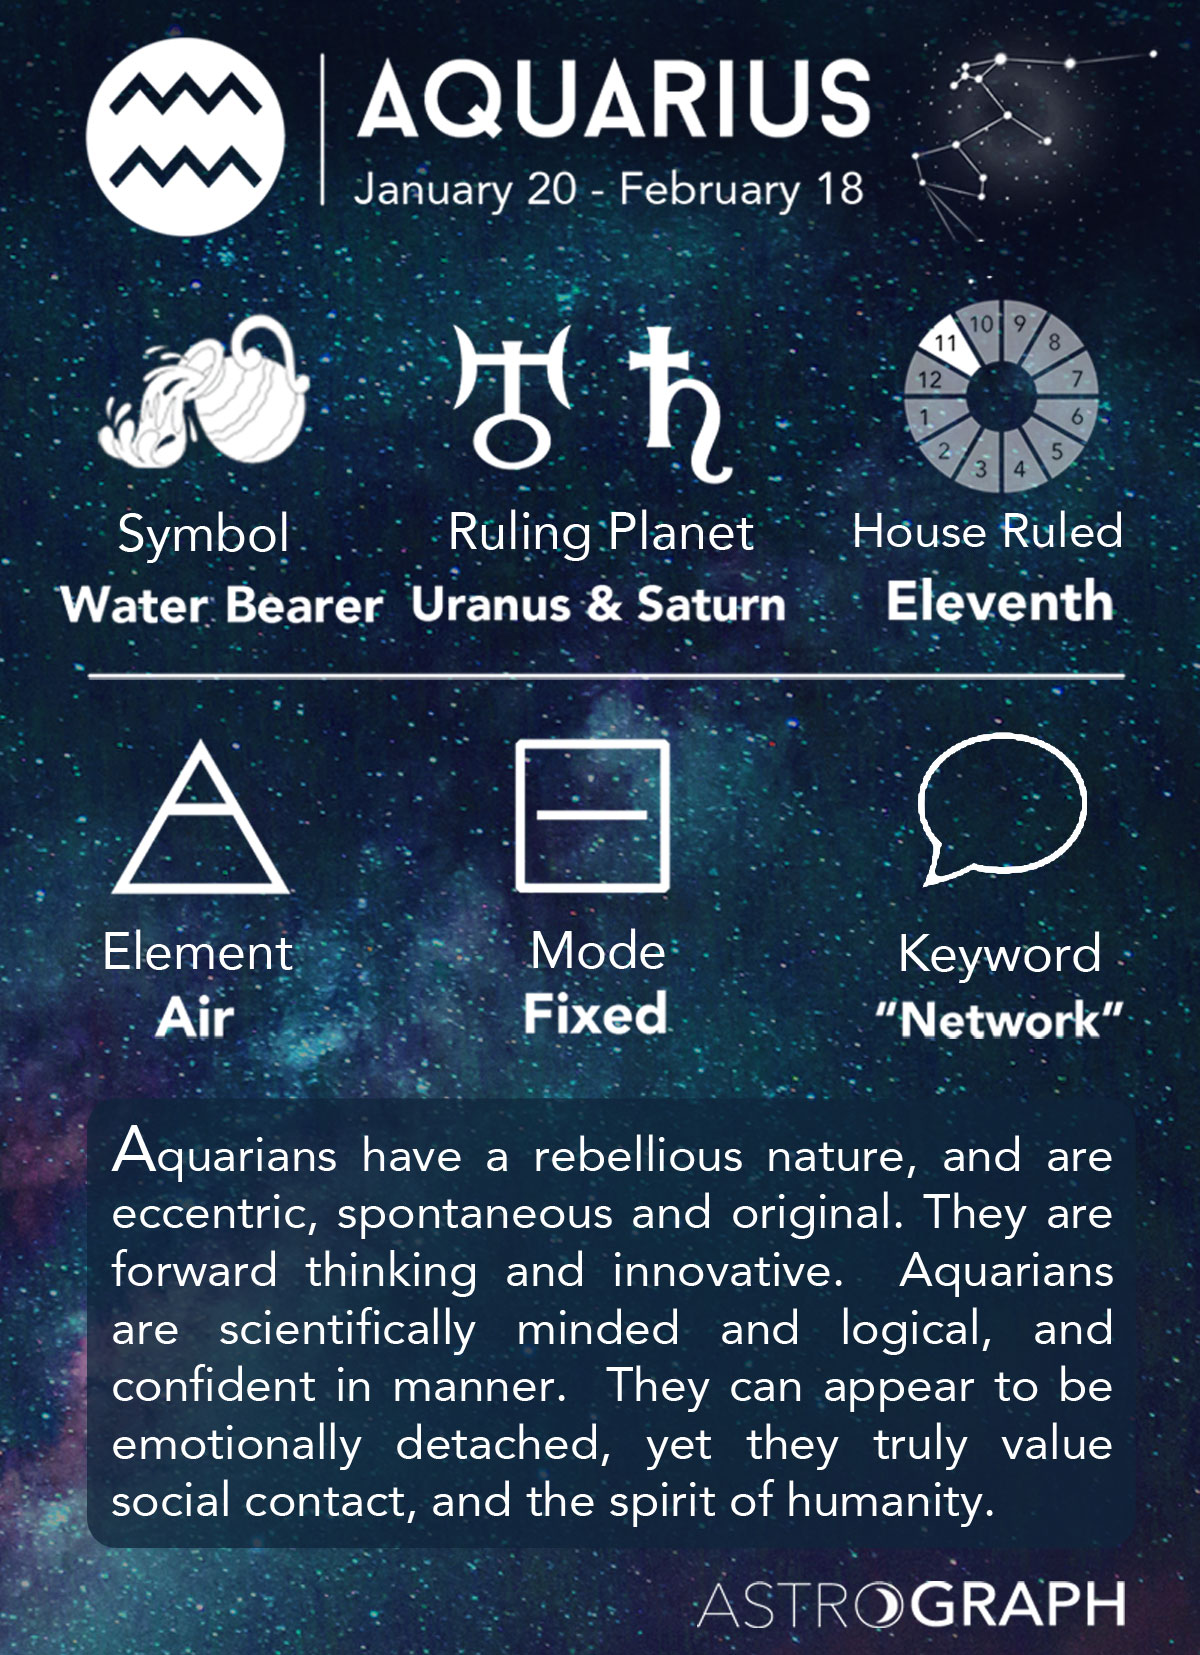 ASTROGRAPH - Aquarius in Astrology